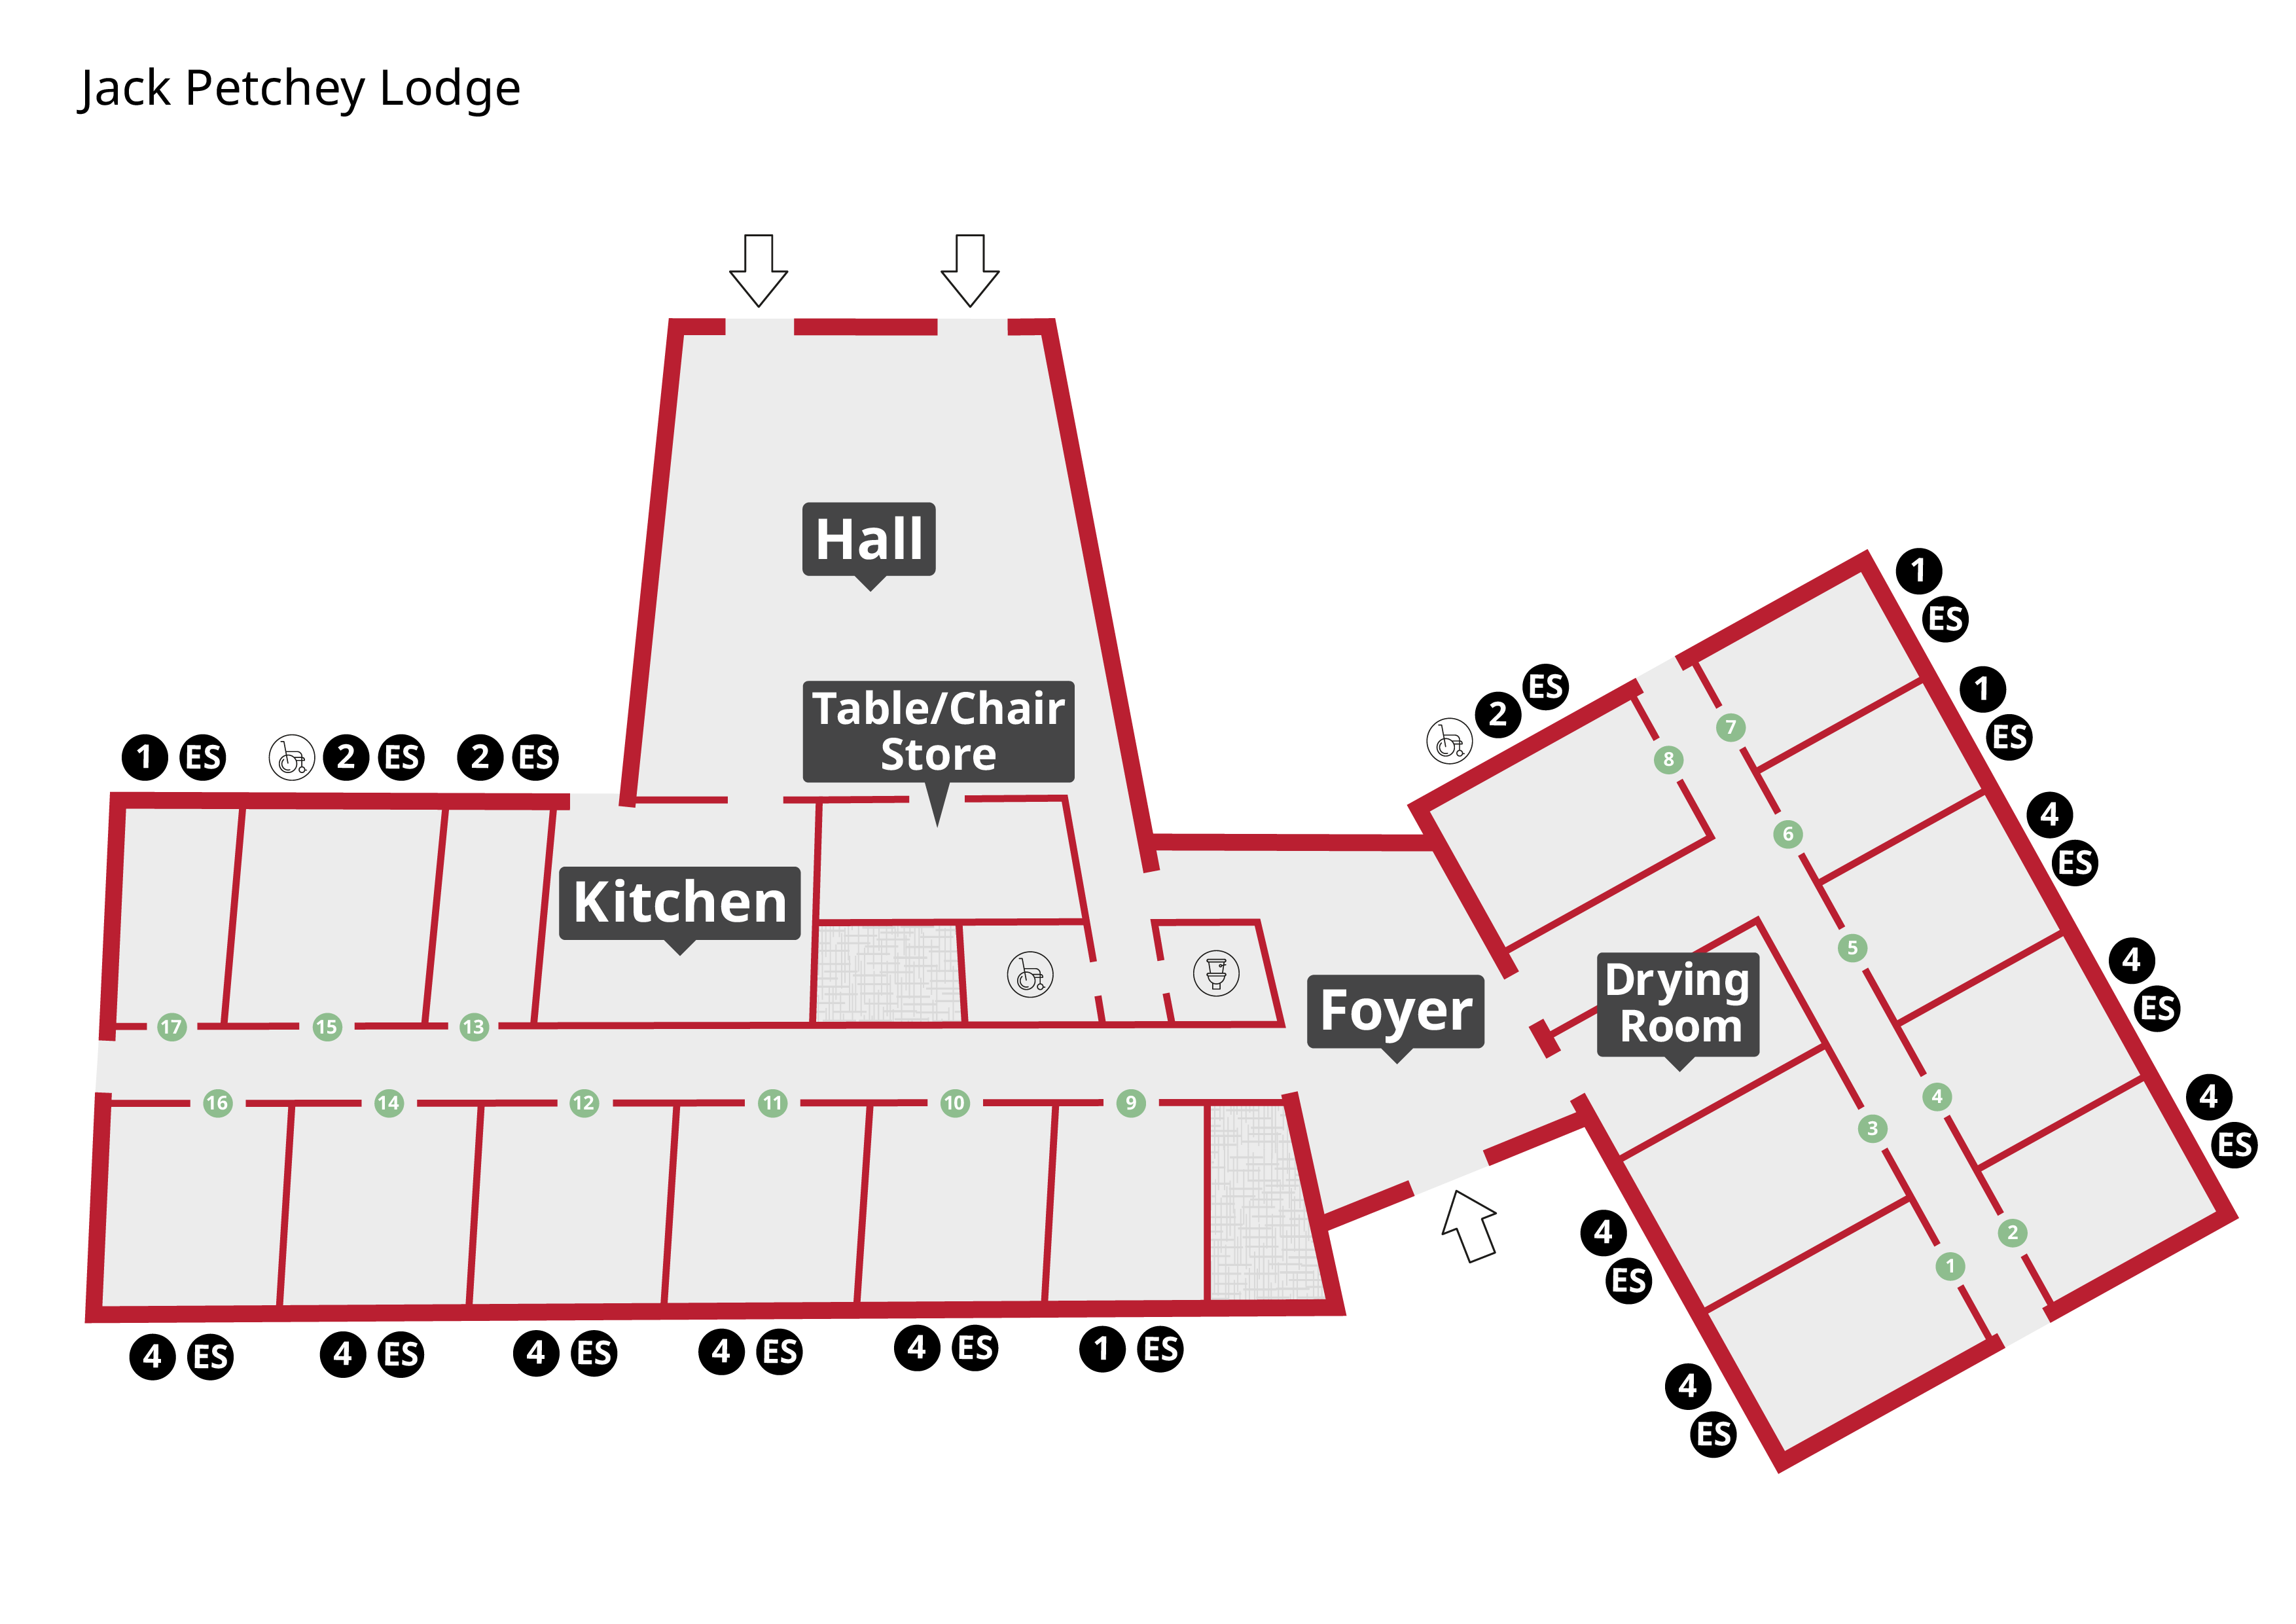 Jack Petchey Lodge Floor Plan